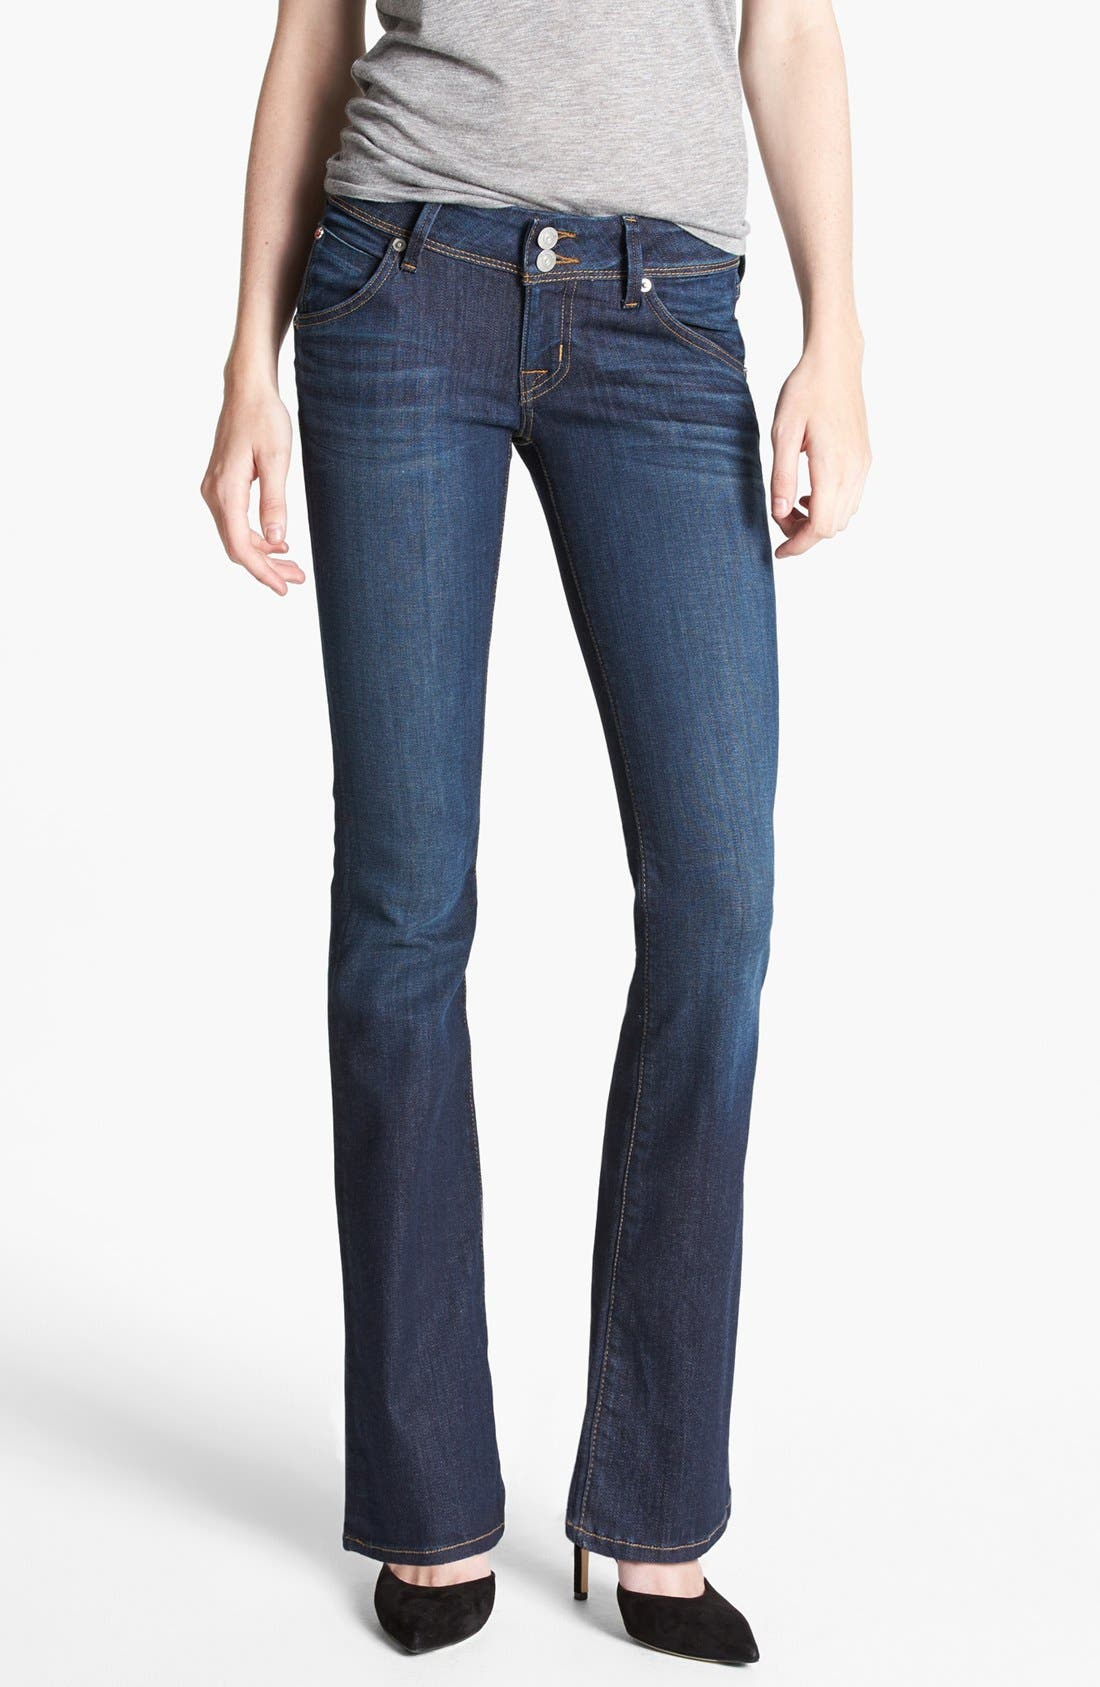 Main Image - Hudson Jeans 'Beth' Baby Bootcut Jeans (Iconic) (Petite)